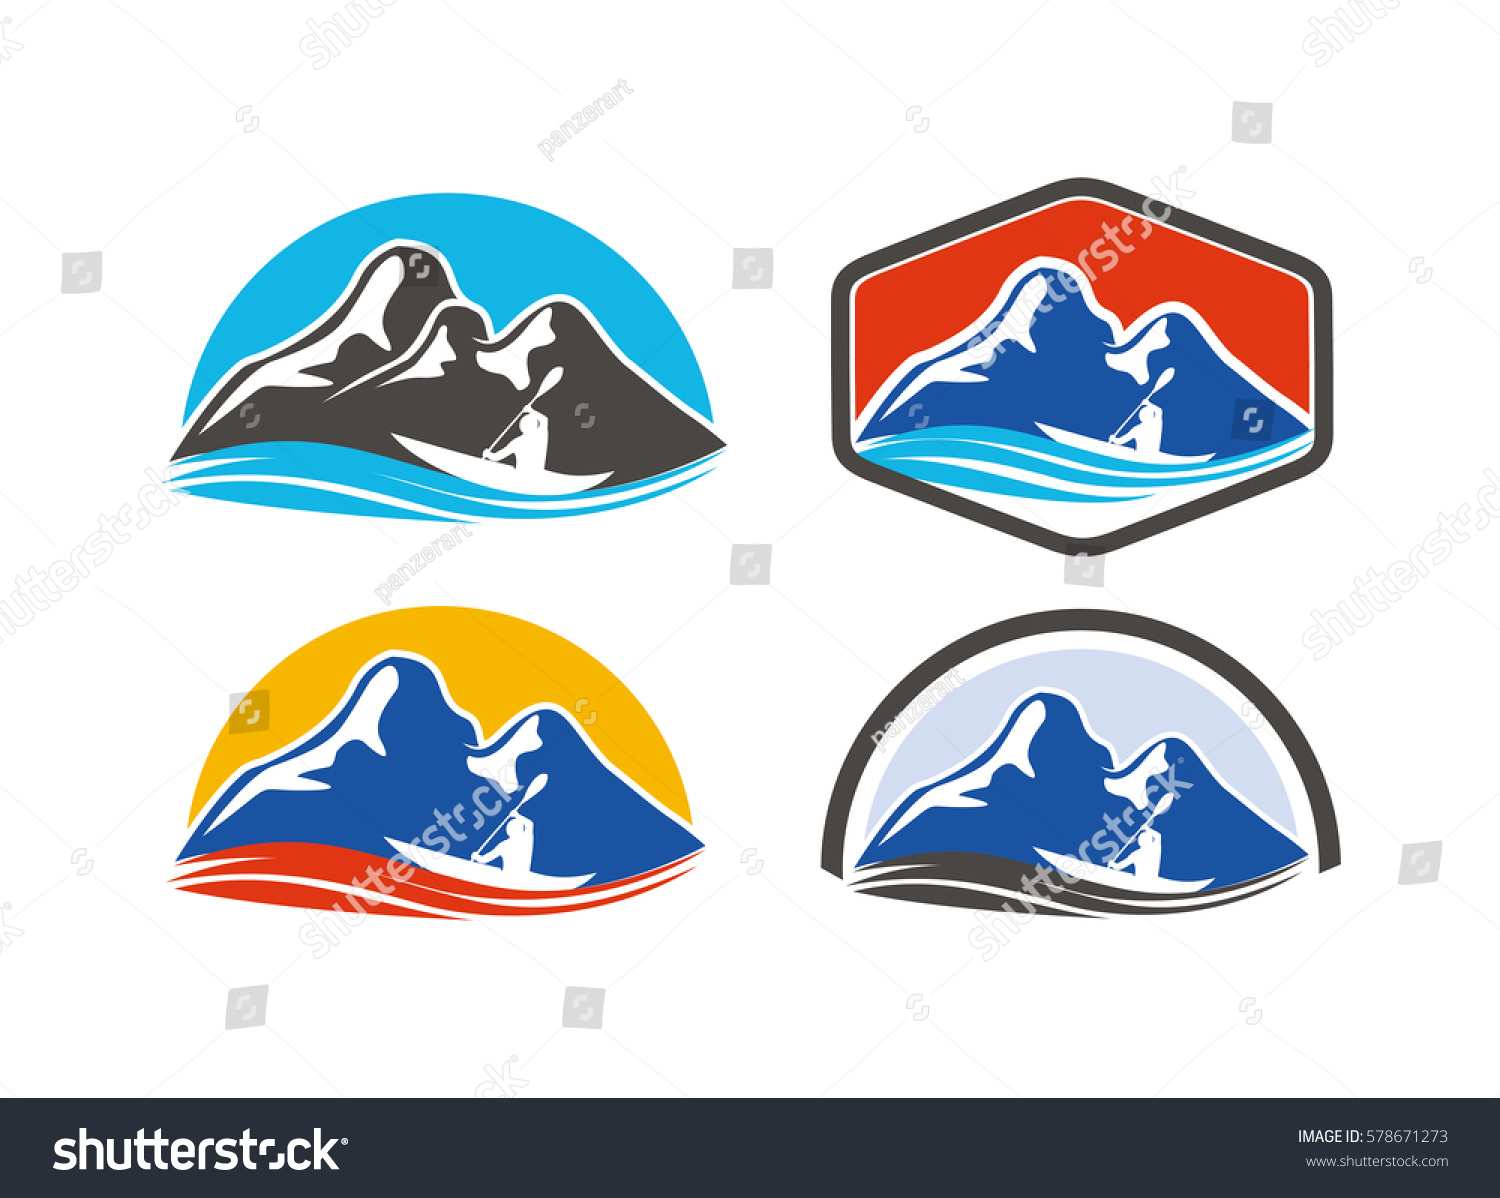 mountain hill logo stock vector royalty free 578671273 shutterstock